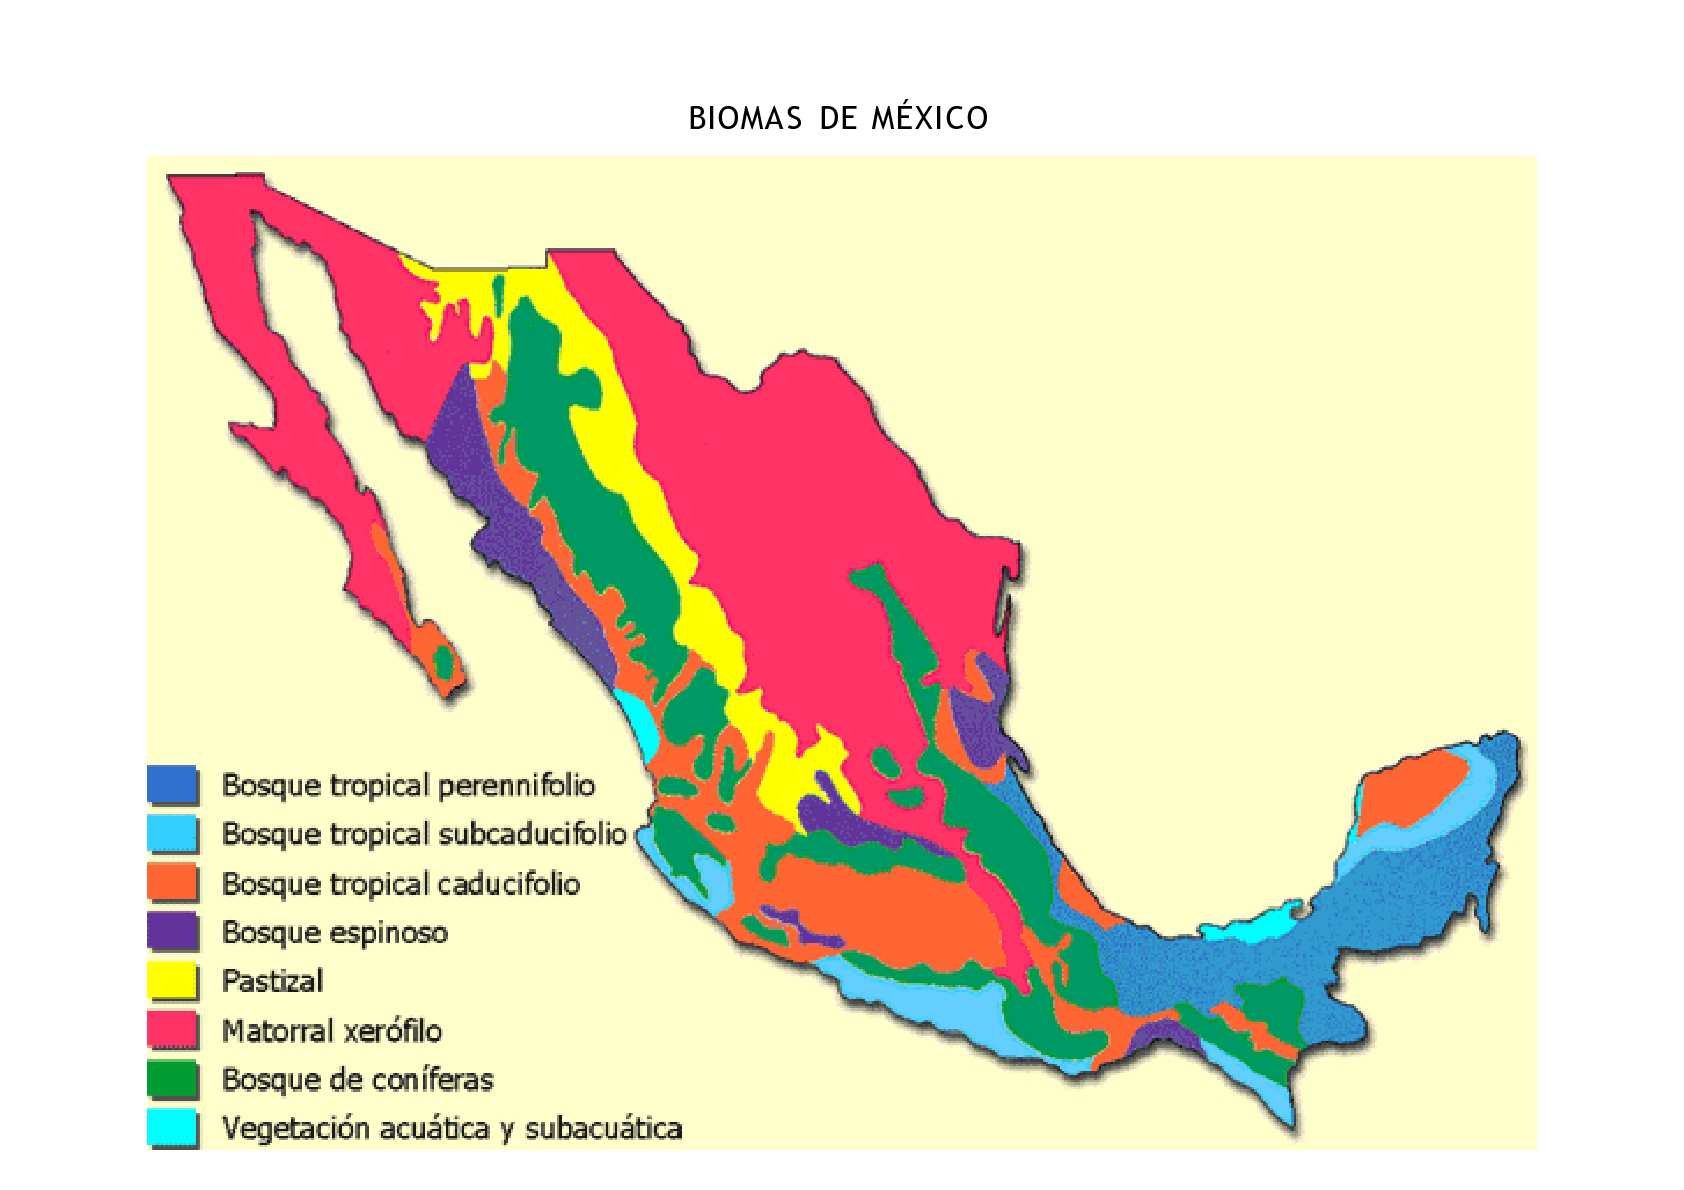 cabo san lucas maps with Biomas De Mexico Mapa on Hotel Review G150812 D596668 Reviews Hotel Riu Palace Riviera Maya Playa del Carmen Yucatan Peninsula furthermore Cozumel Tourist Map furthermore Acapulco Bay Tourist Map additionally La Paz 1 as well Mexico beaches.